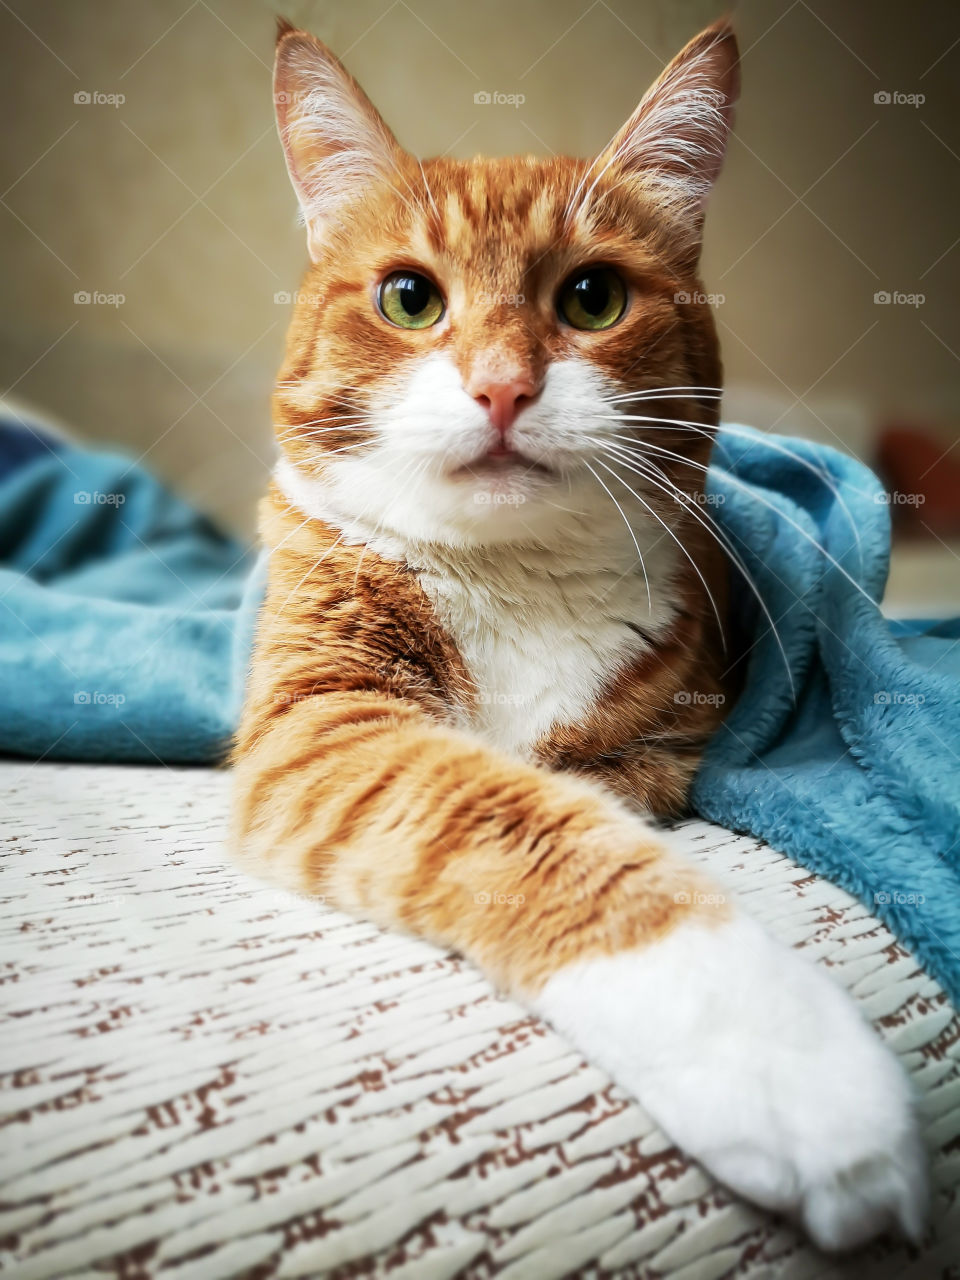 A large beautiful ginger tabby cat imposingly lies on a sofa and looks at the camera.